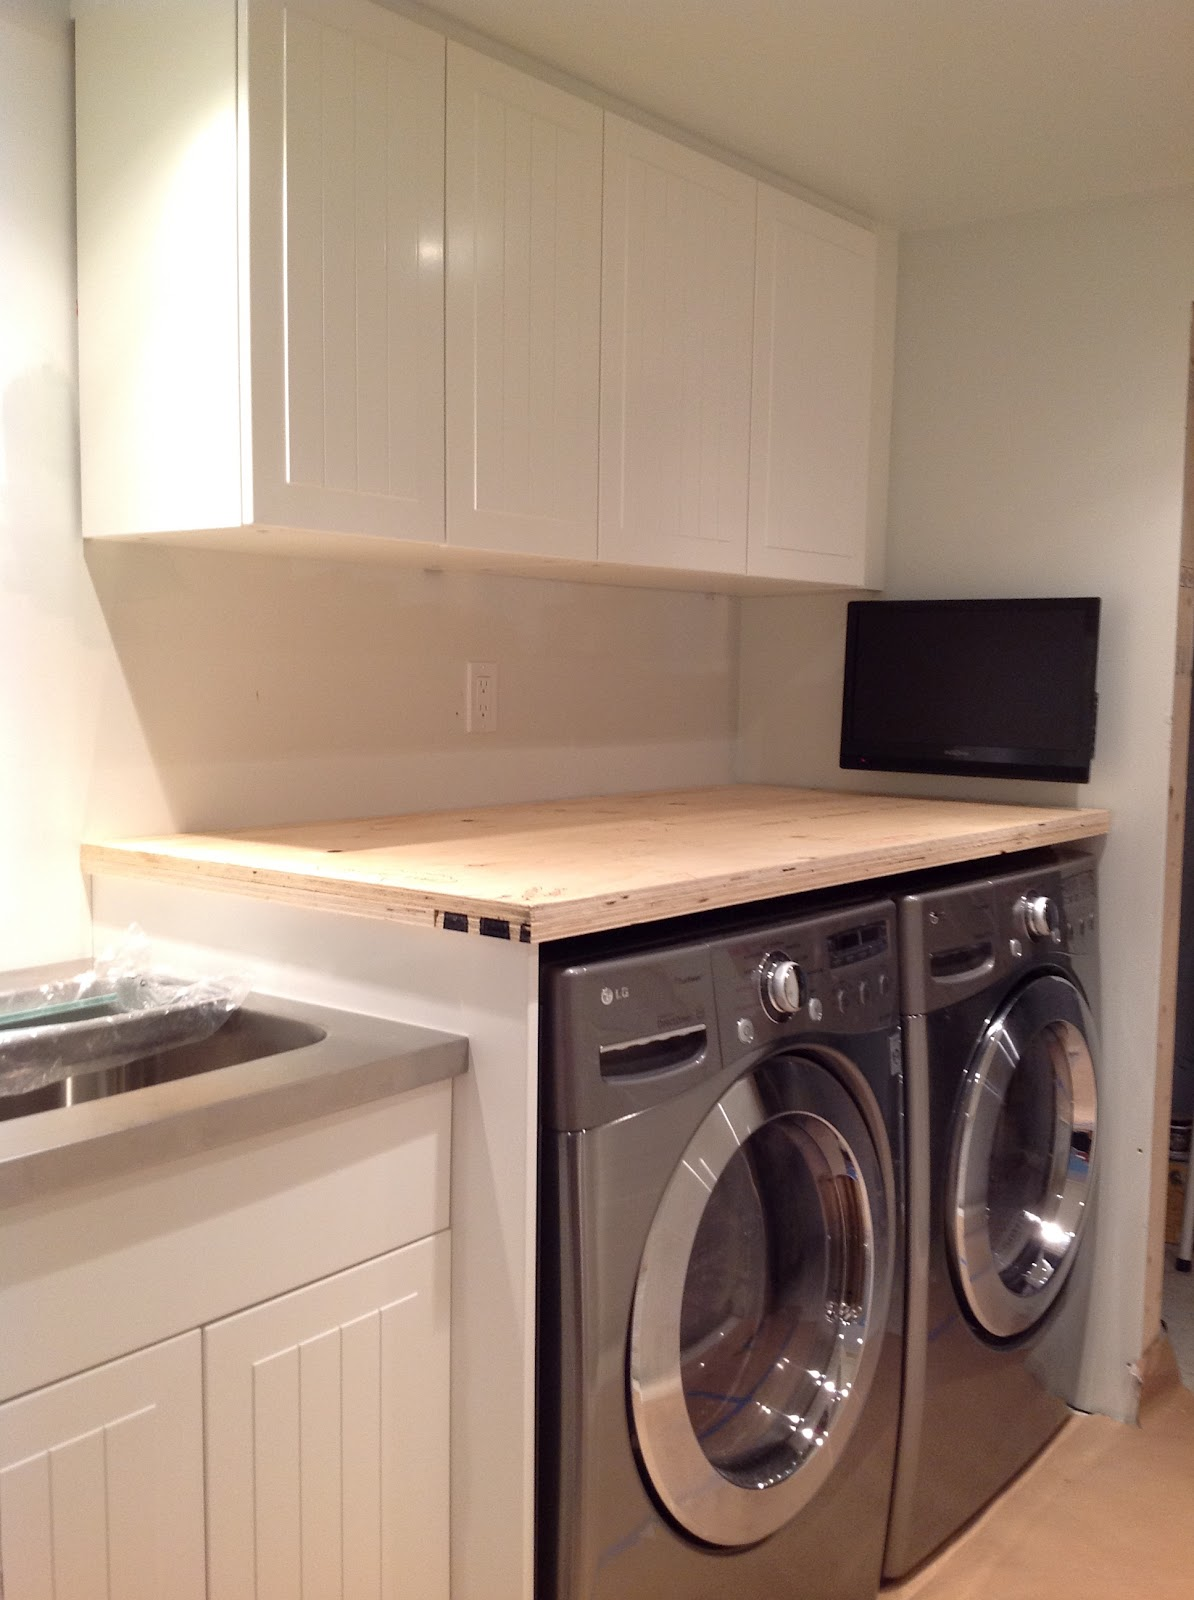 Laundry Room Countertop Over A Washer